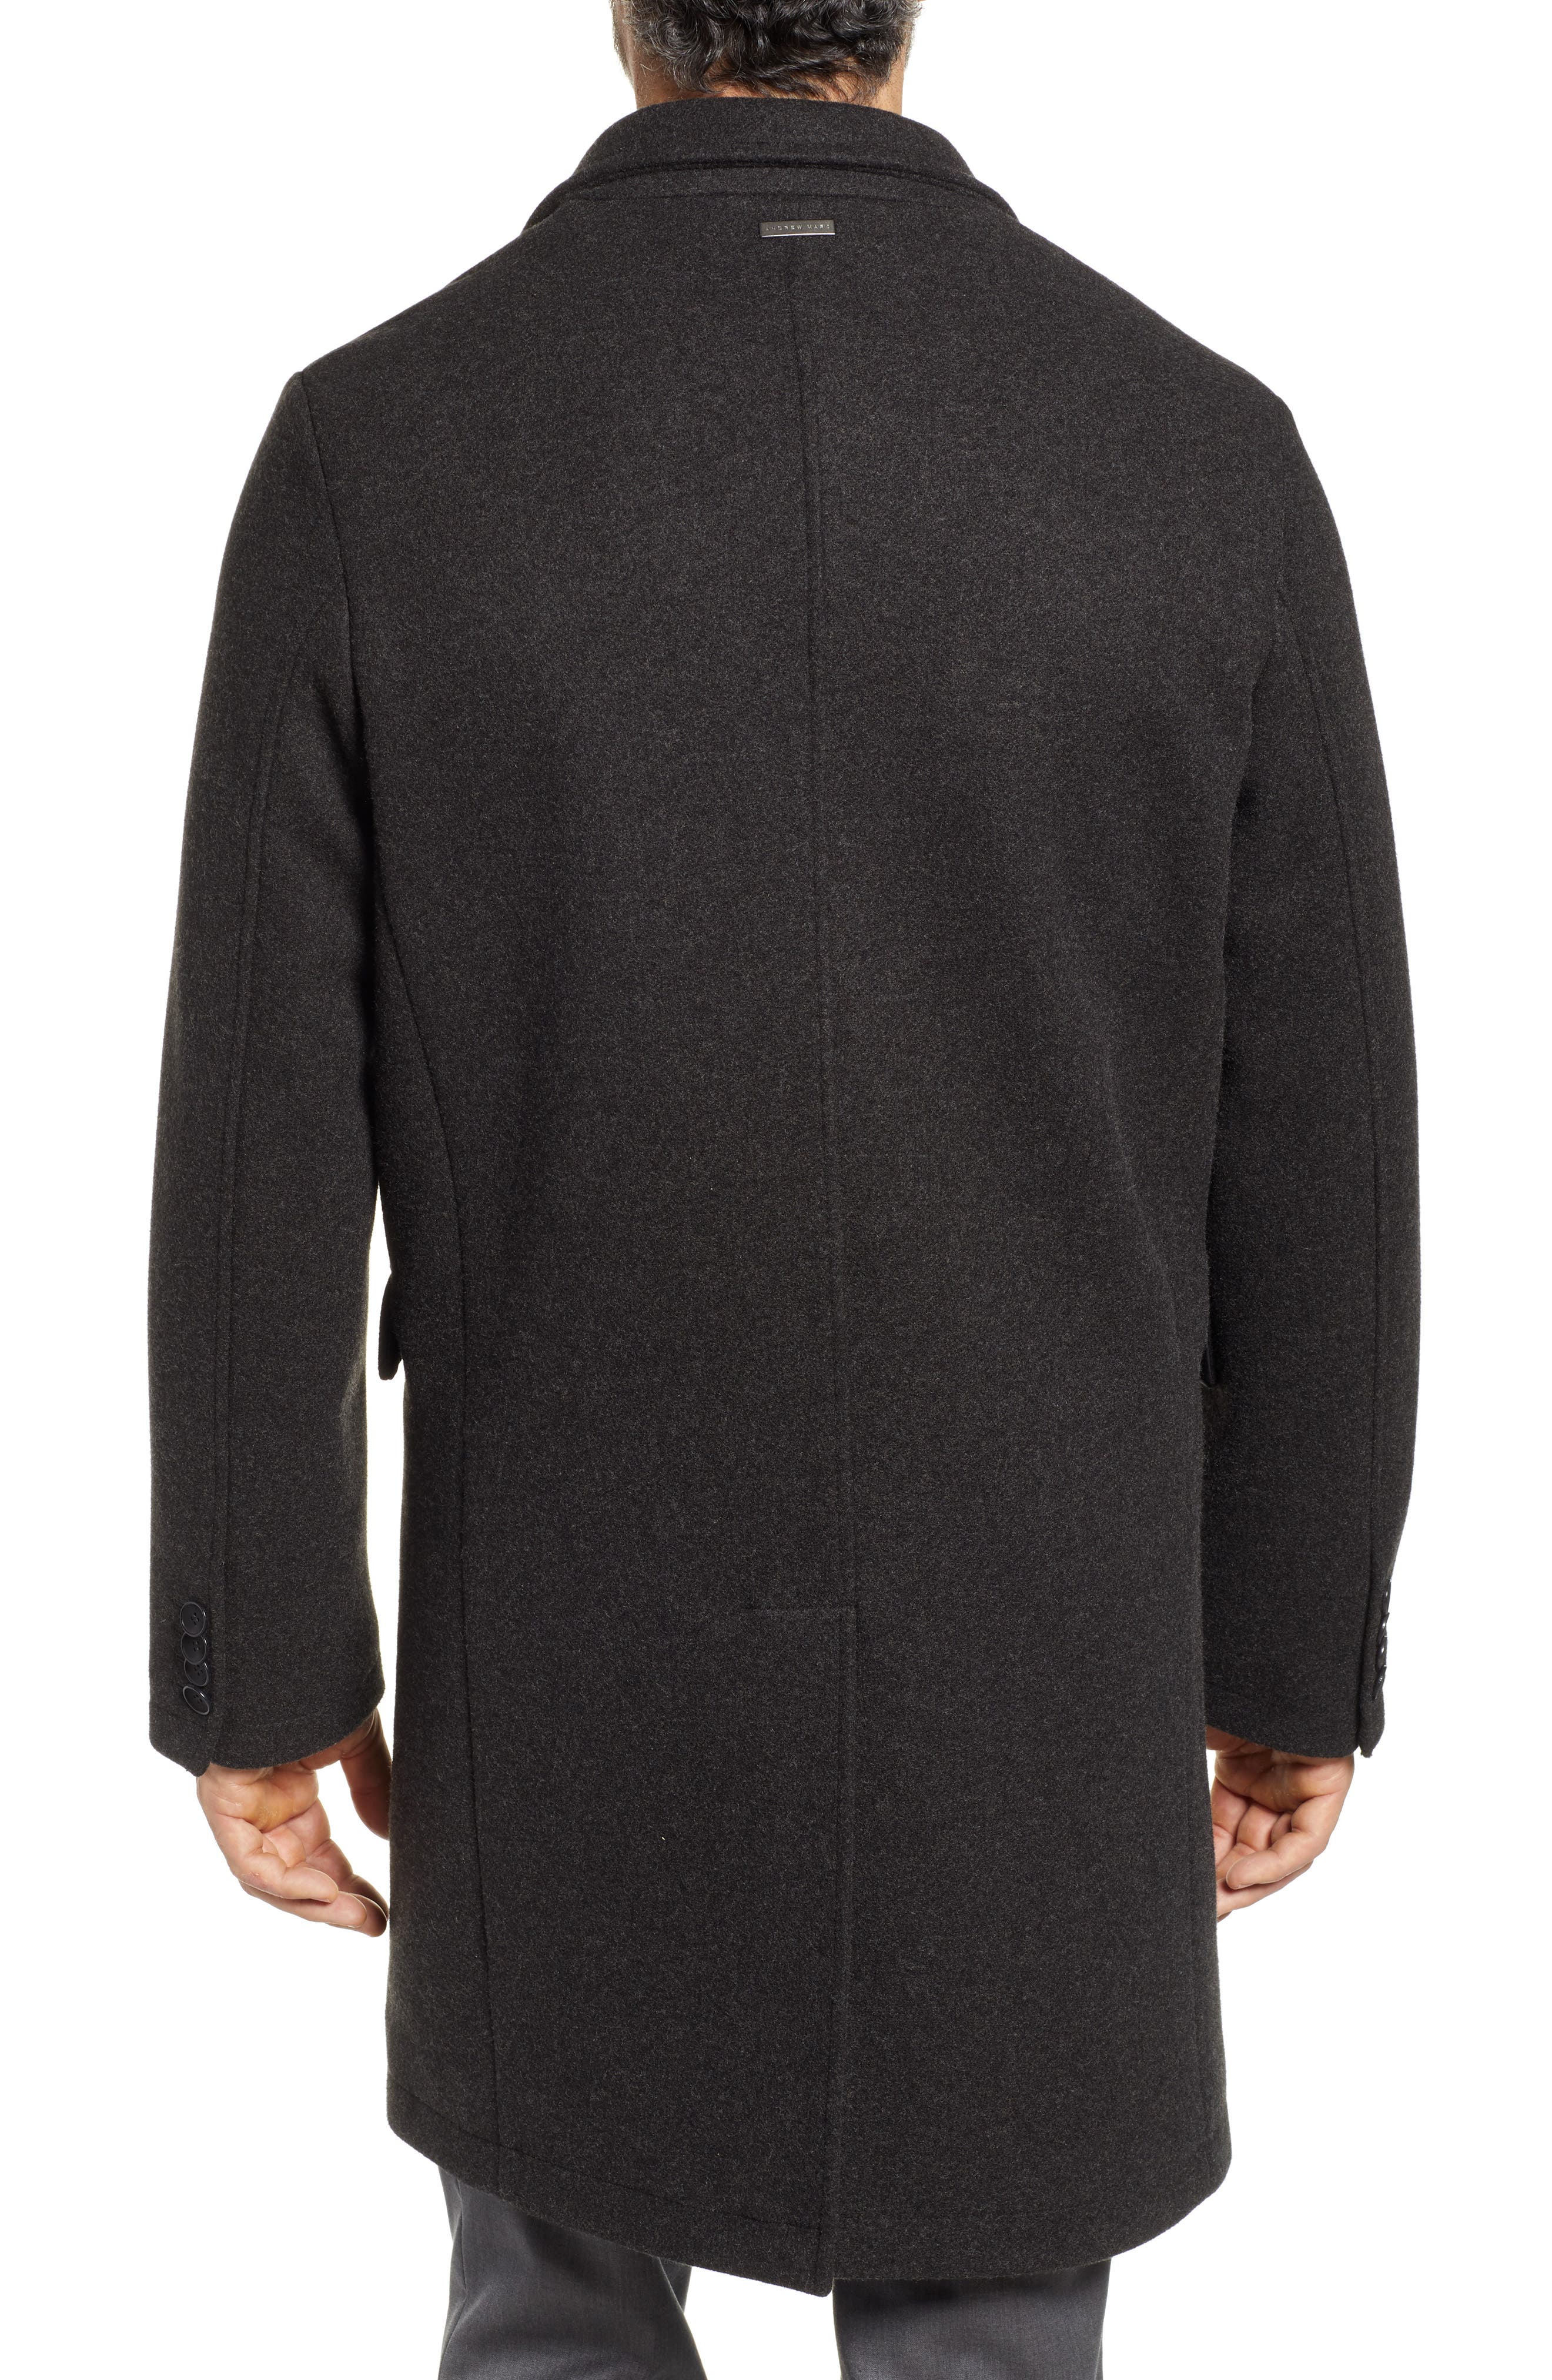 Cunningham Quilted Bib Inset Topcoat,                             Alternate thumbnail 2, color,                             CHARCOAL